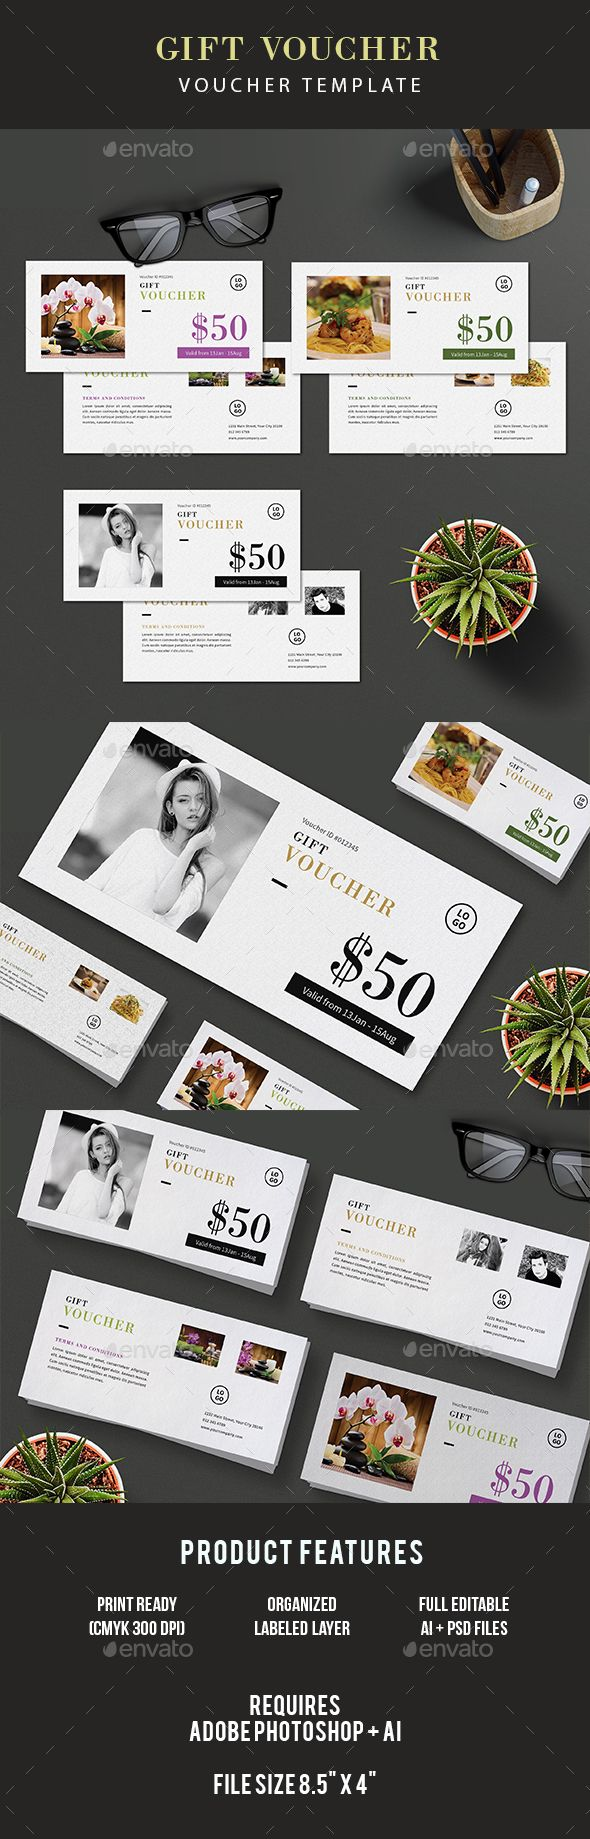 Fun Voucher Template Intelligence Research Specialist Sample Resume  46b4322e7ab16d54954f0b6d9b208f72 Fun Voucher Templatehtml  Fun Voucher Template